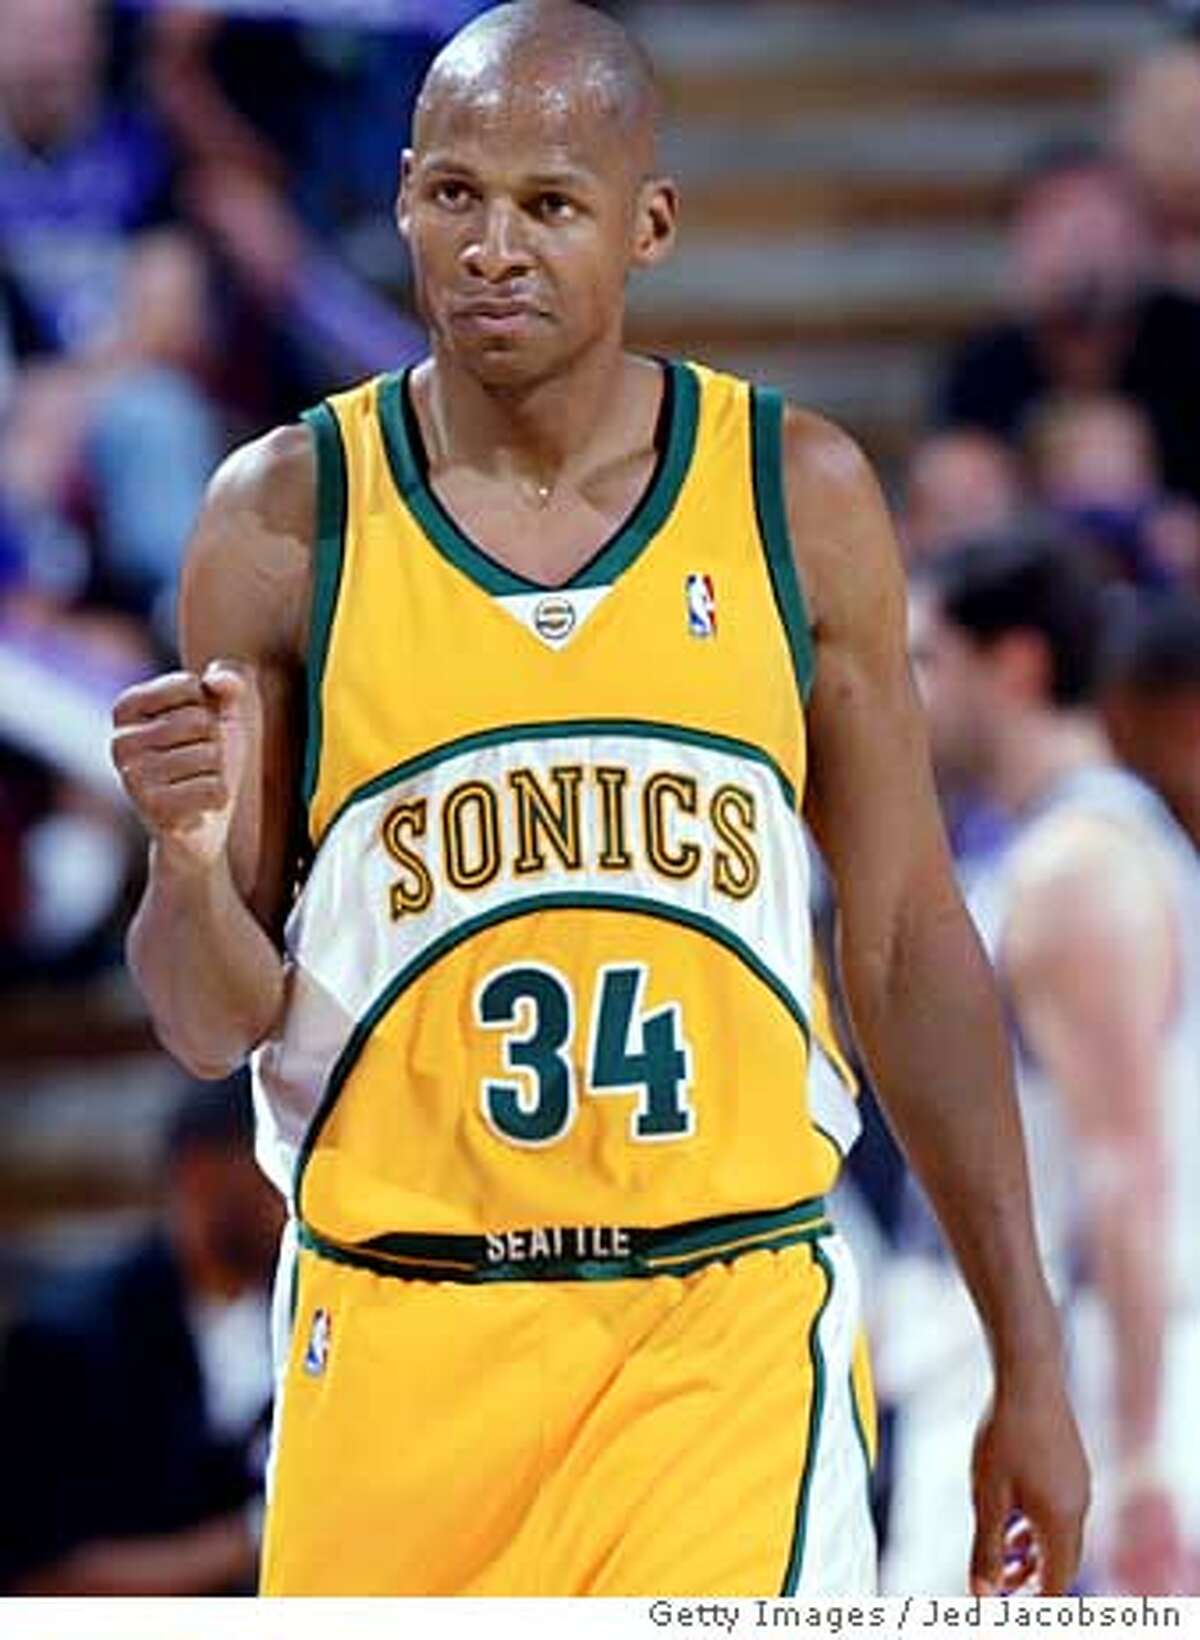 Sonics rally from 19 down, beat Kings in Sacramento